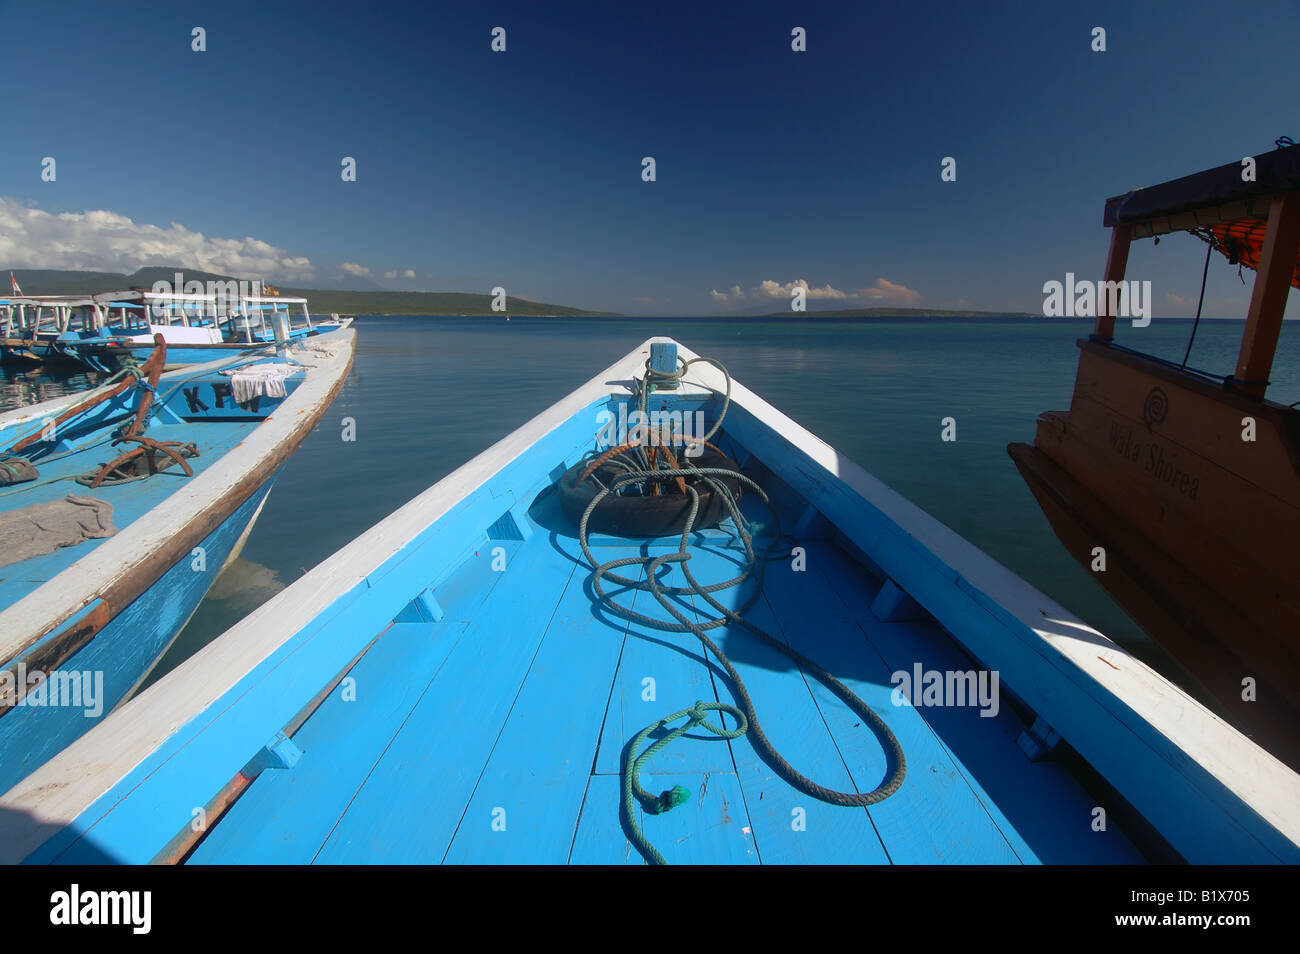 Local boats prahu in the harbour at Labuhan Lalang - Stock Image